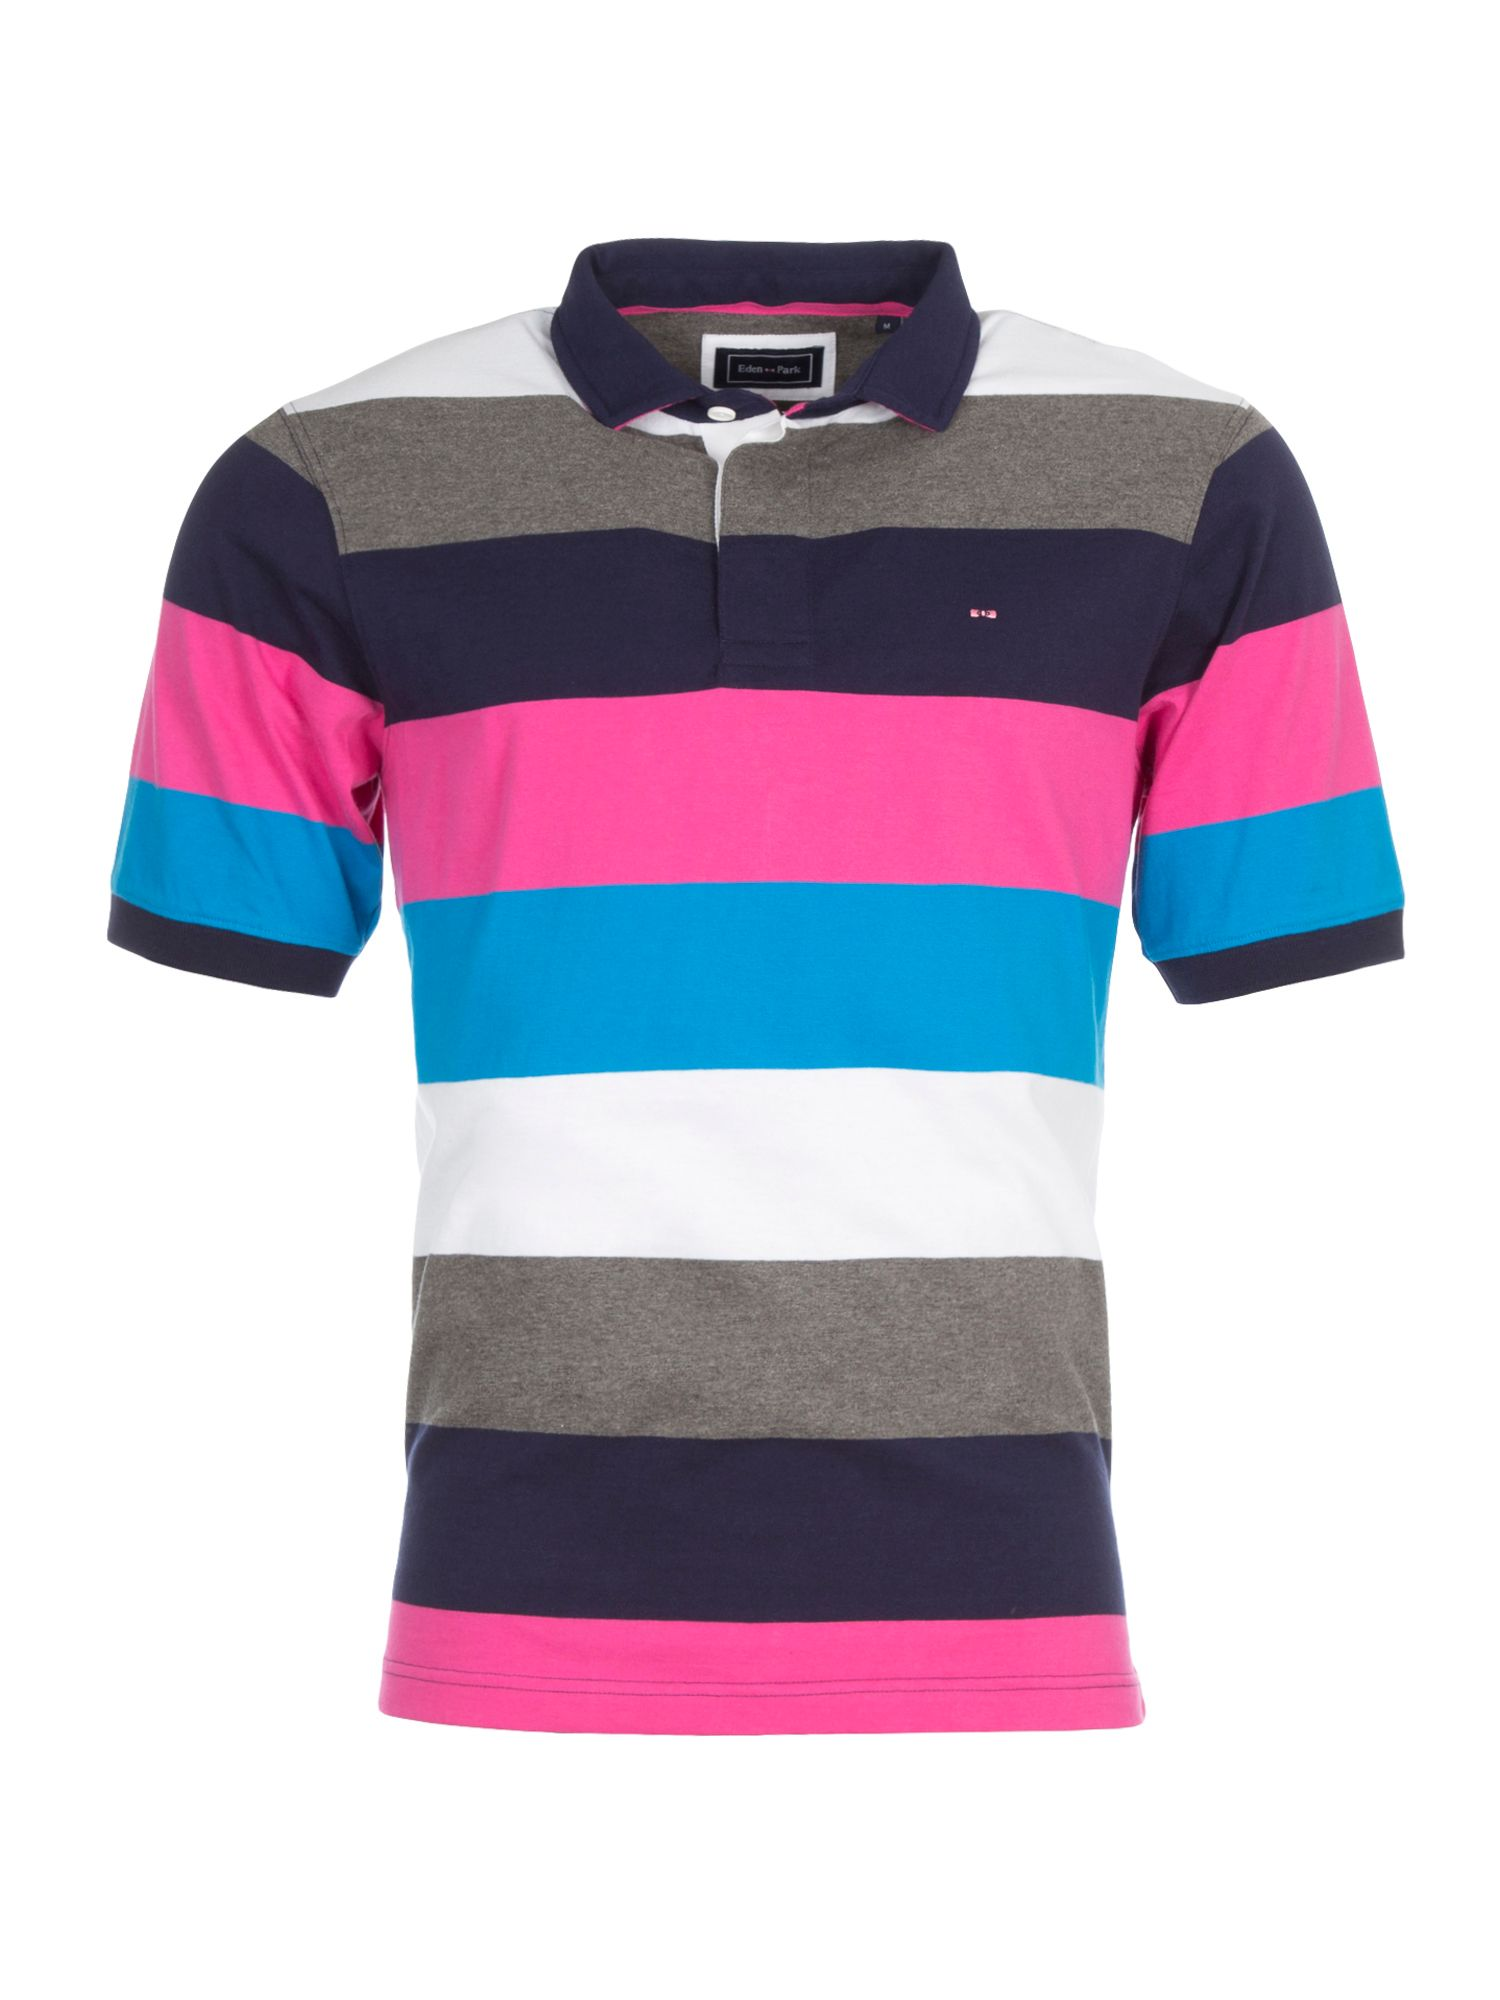 Men's Eden Park Multicoloured Stripe Polo Shirt, Multi-Coloured